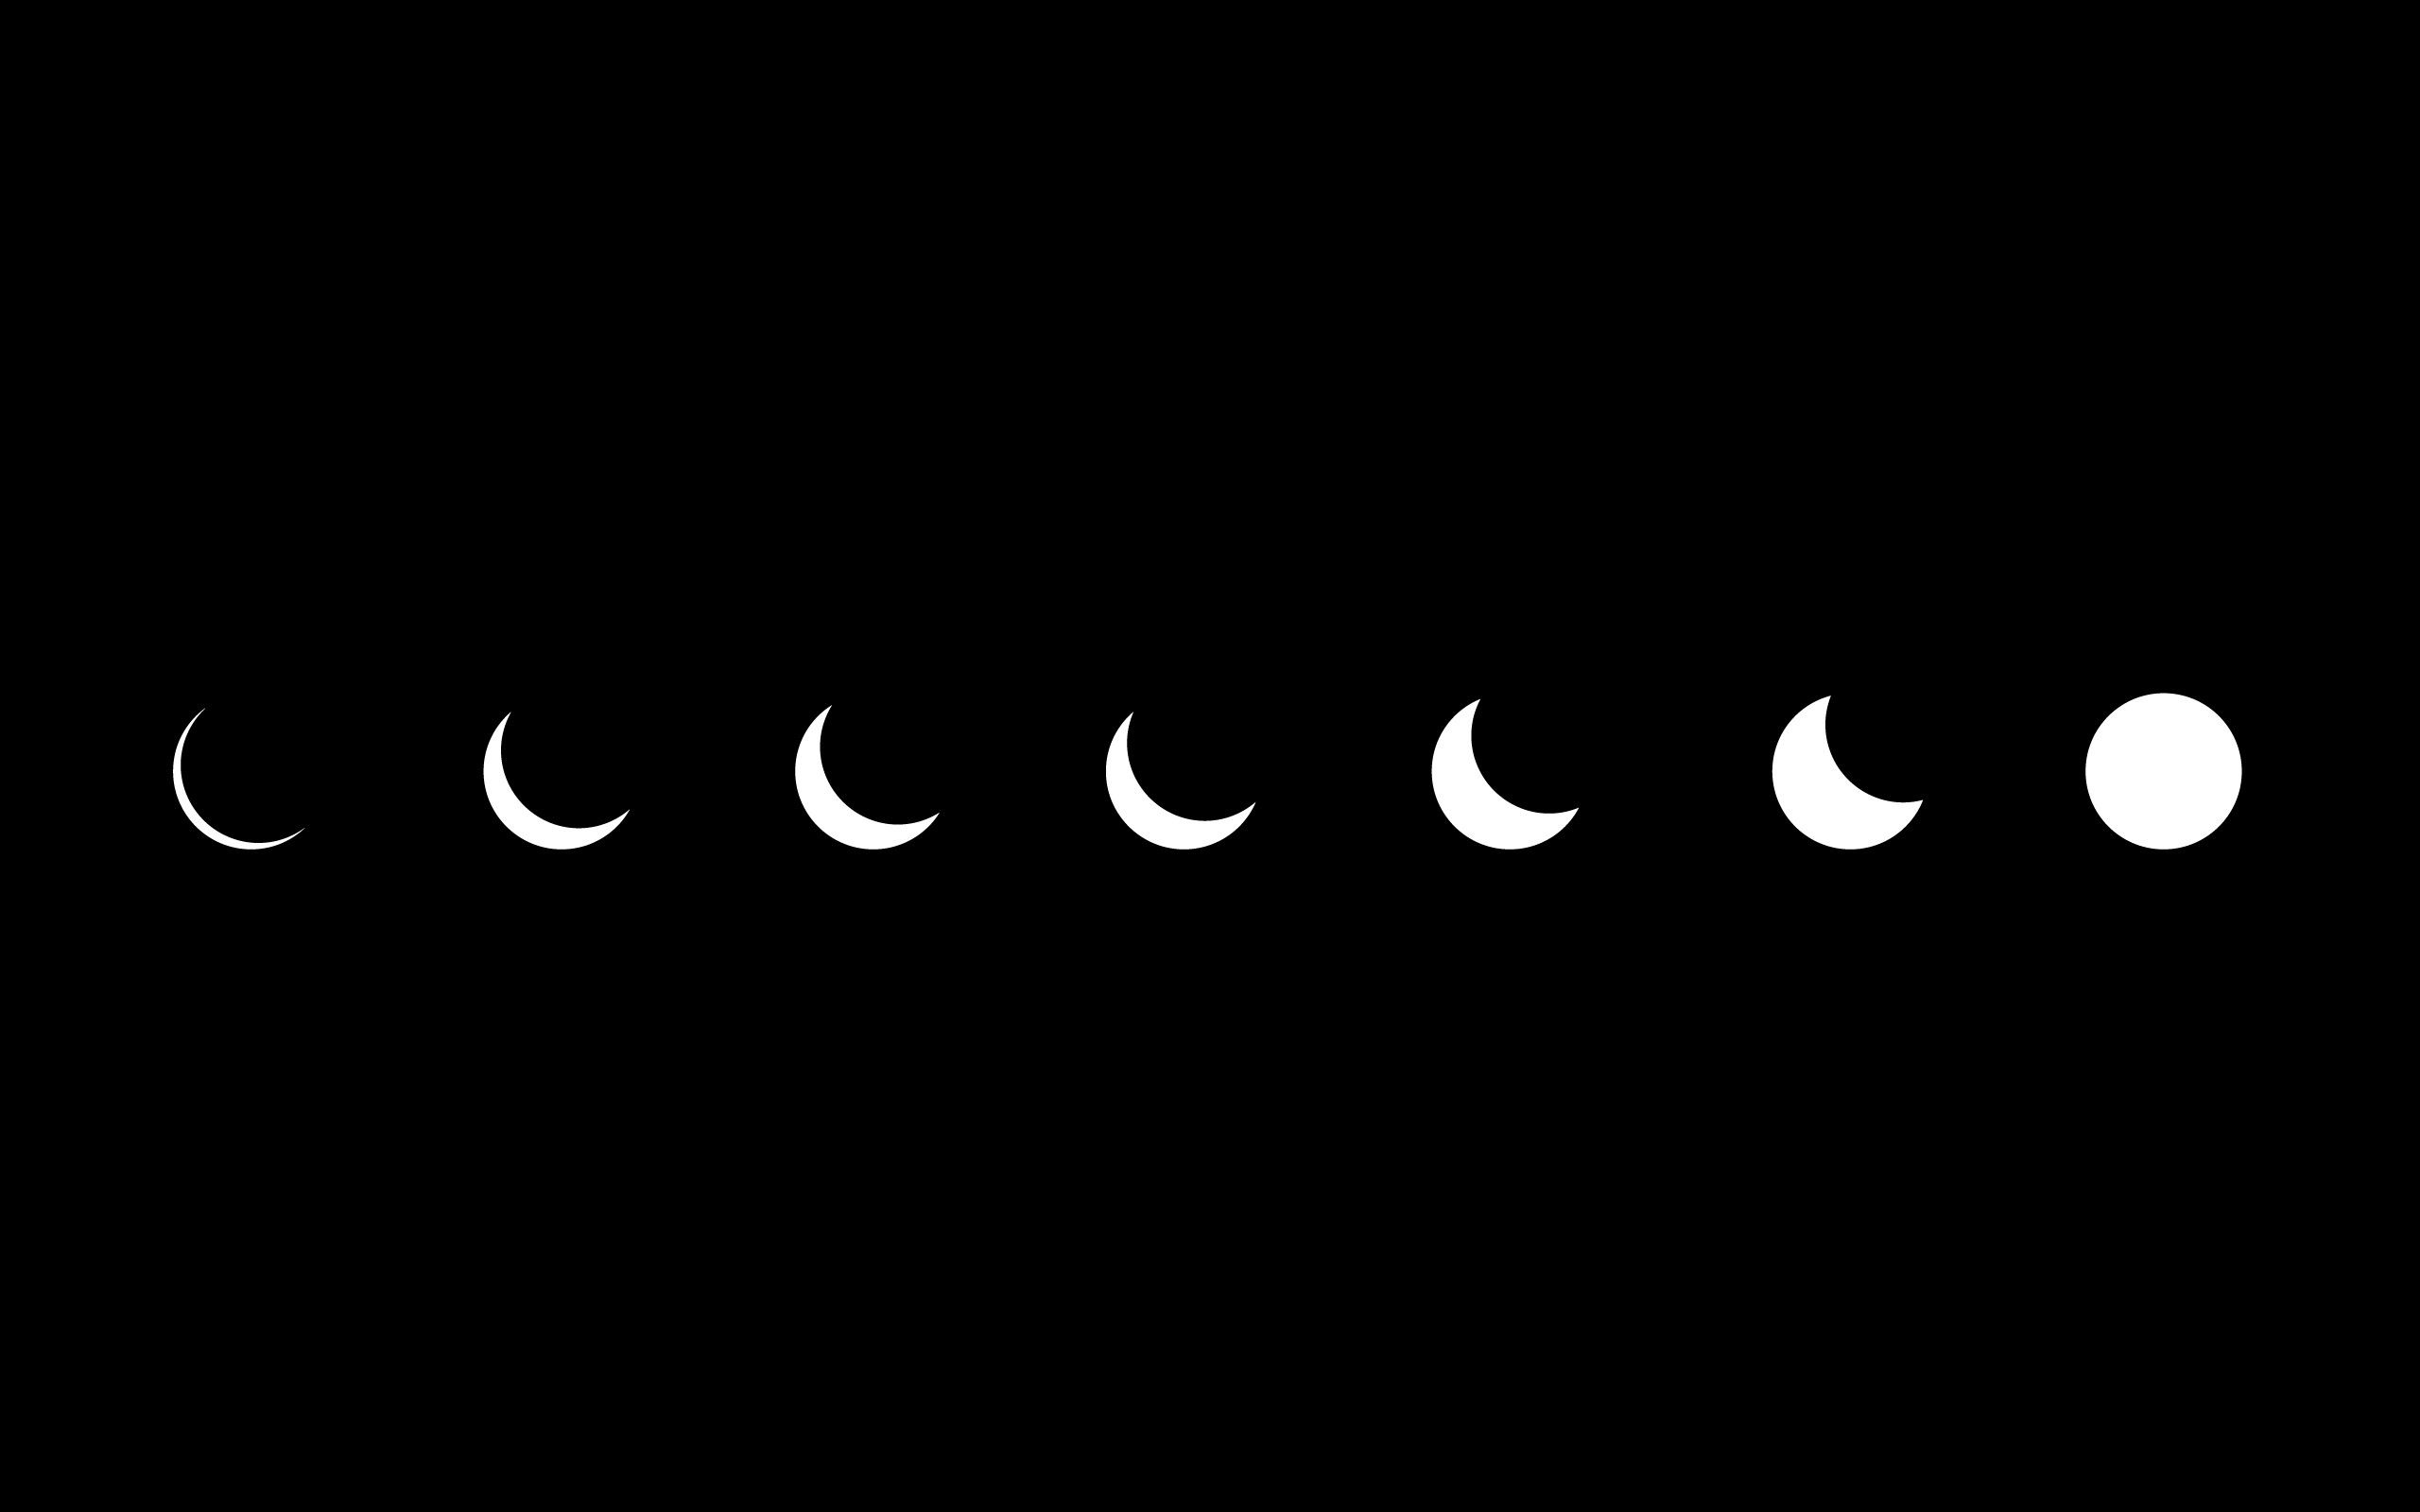 high resolution minimalistic eclipse artwork simple hd wallpaper